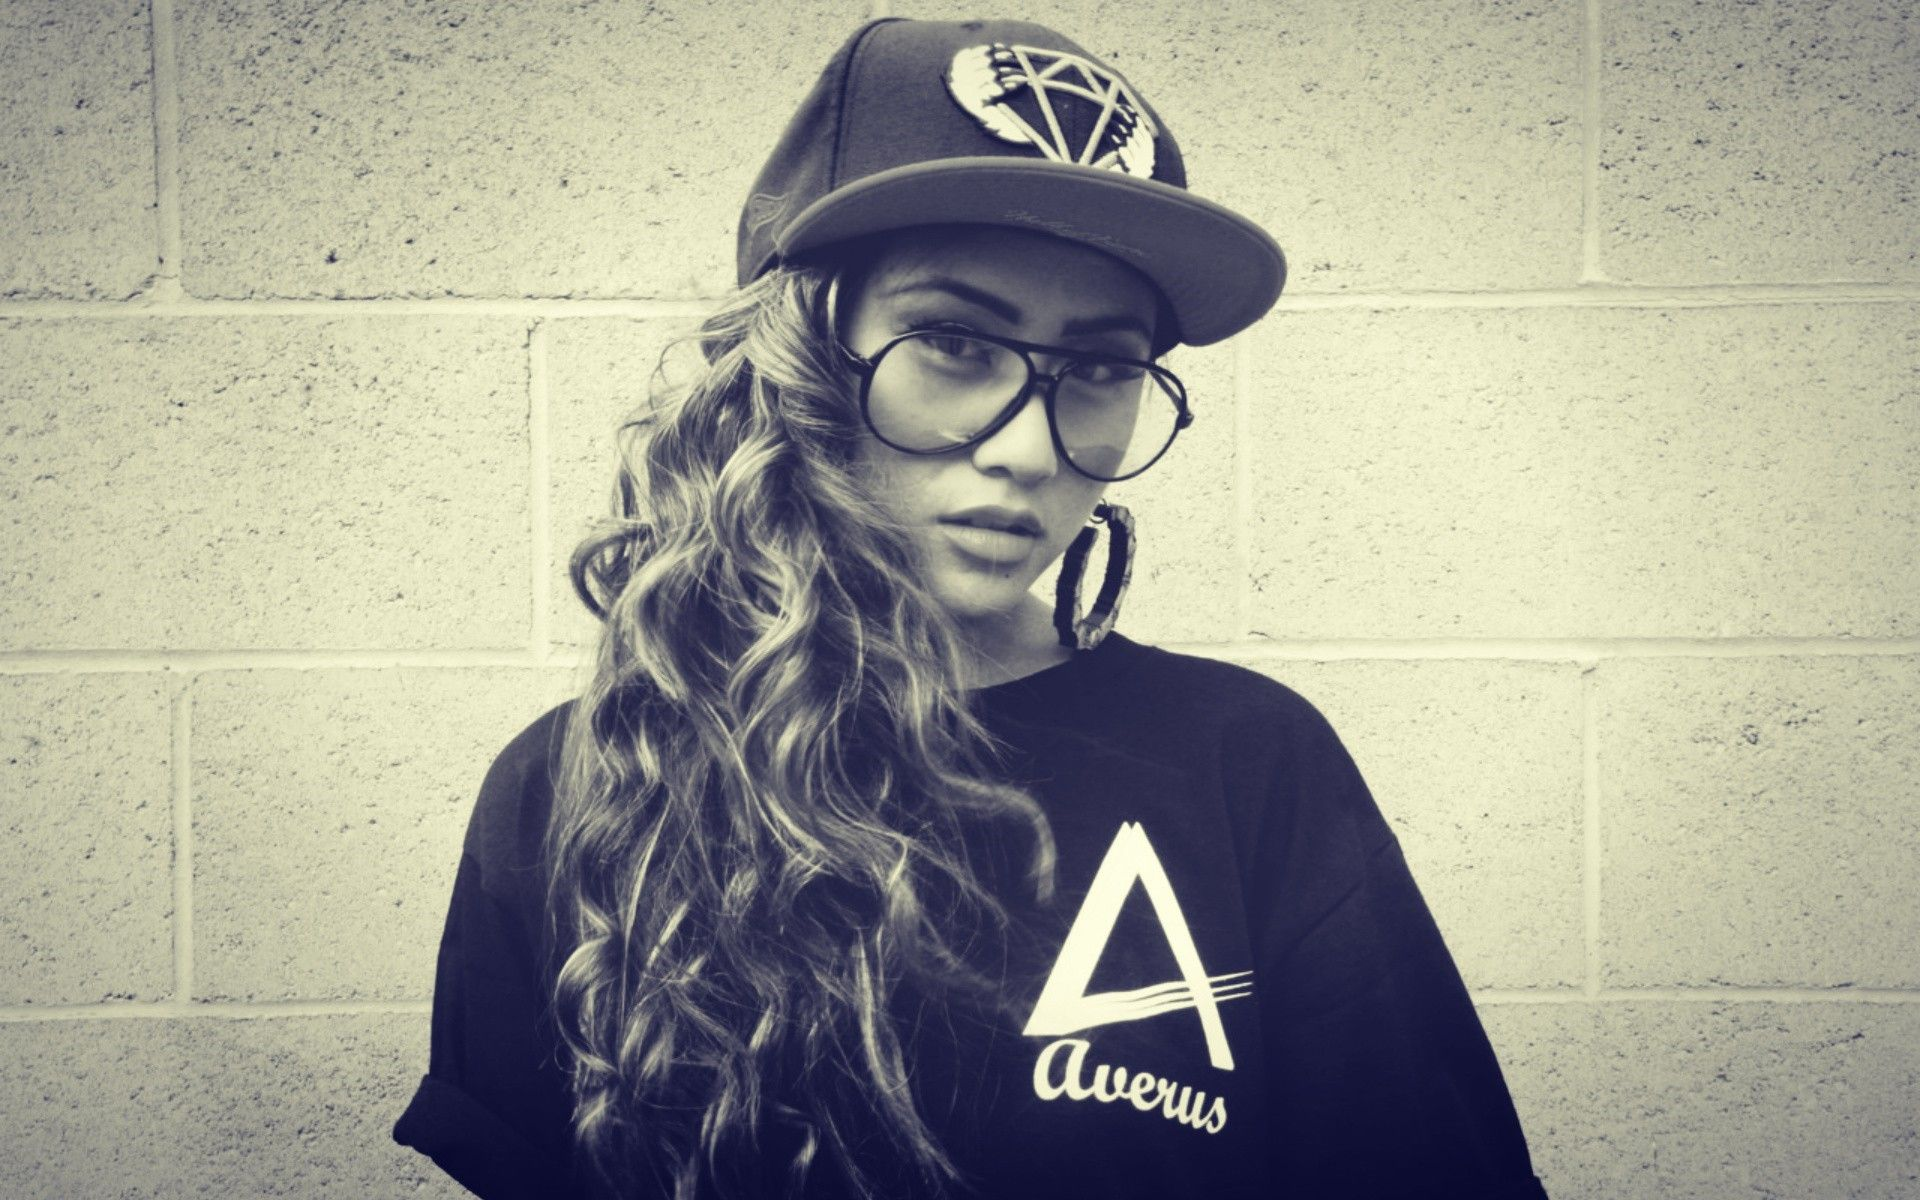 1920x1200 Swag Girl with Cap Images | HD Wallpapers